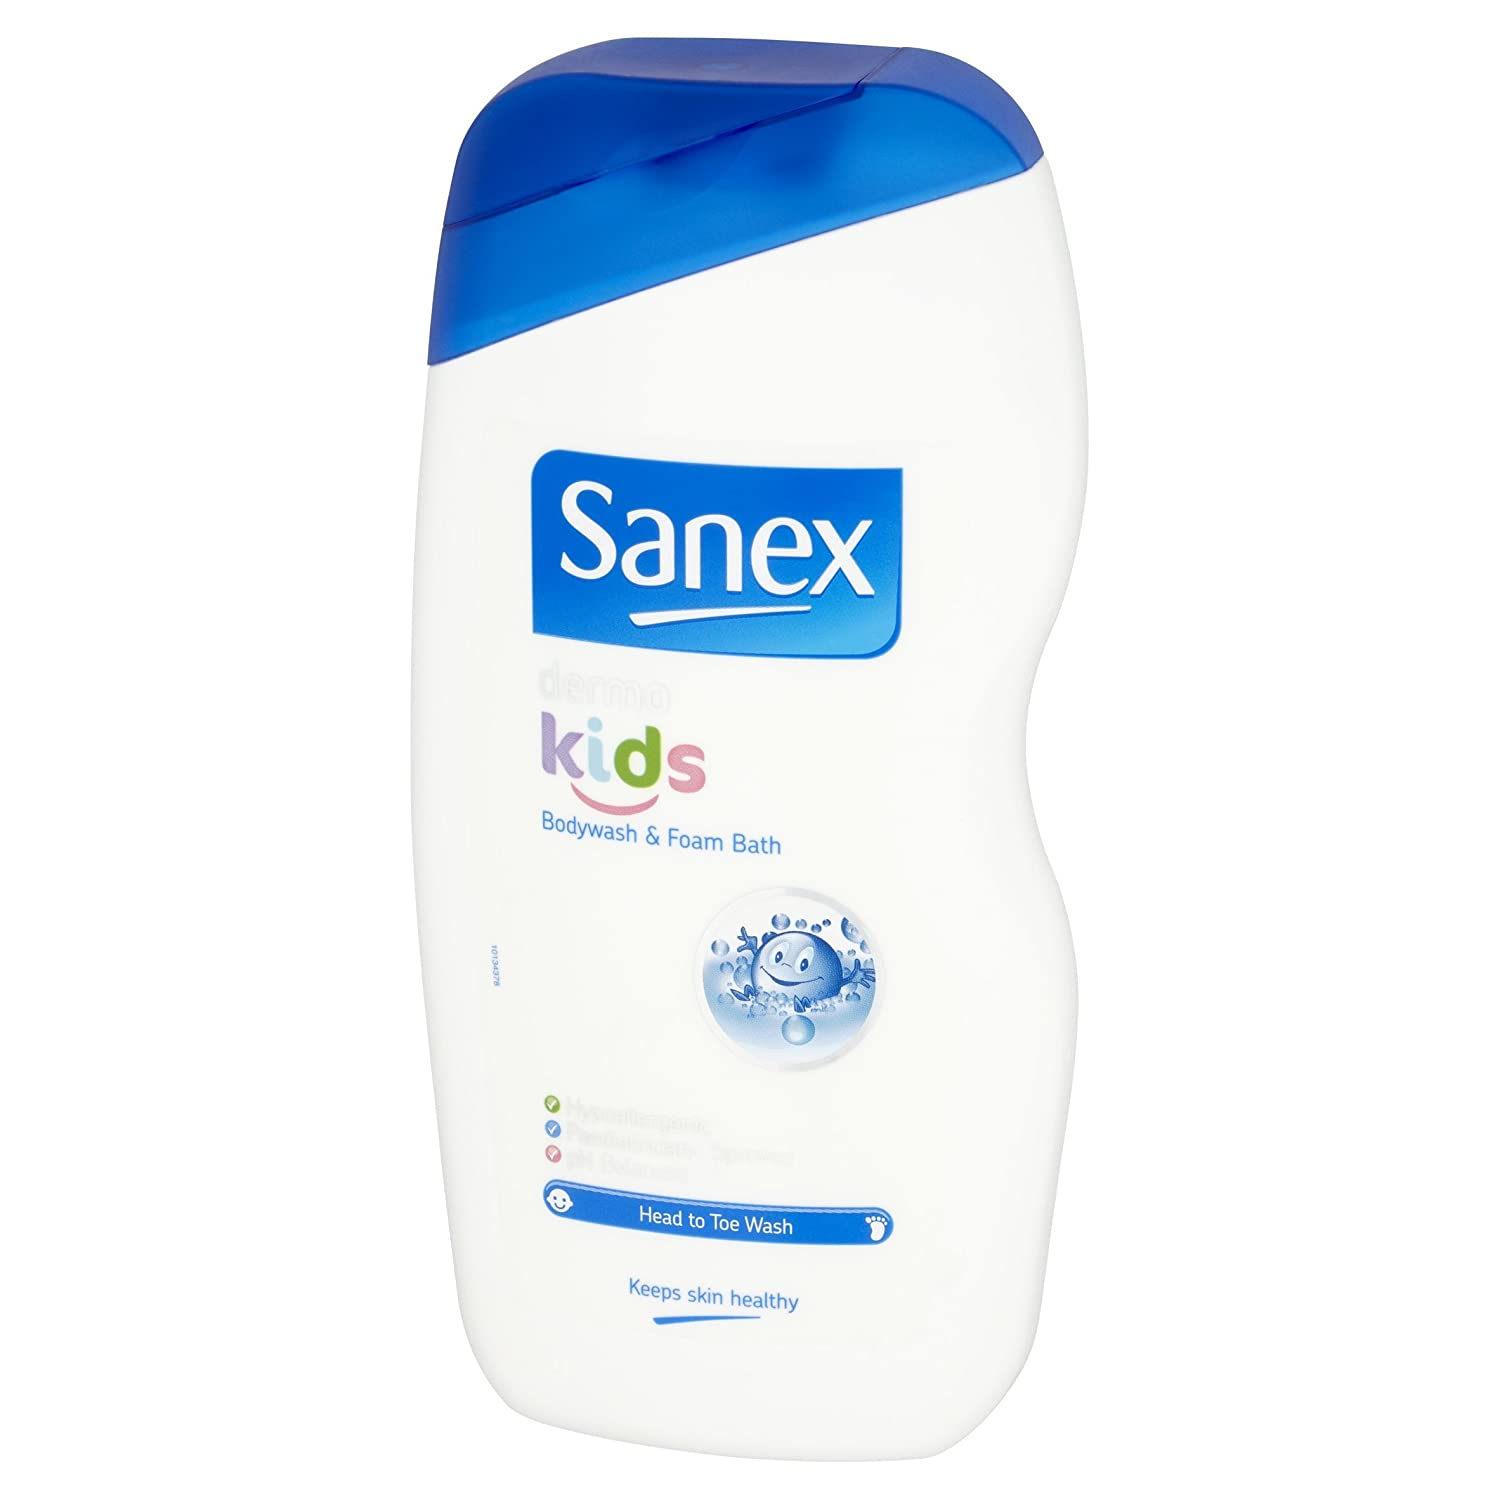 Sanex Dermo Kids Body Wash and Foam Bath, 500 ml: Amazon.co.uk ...